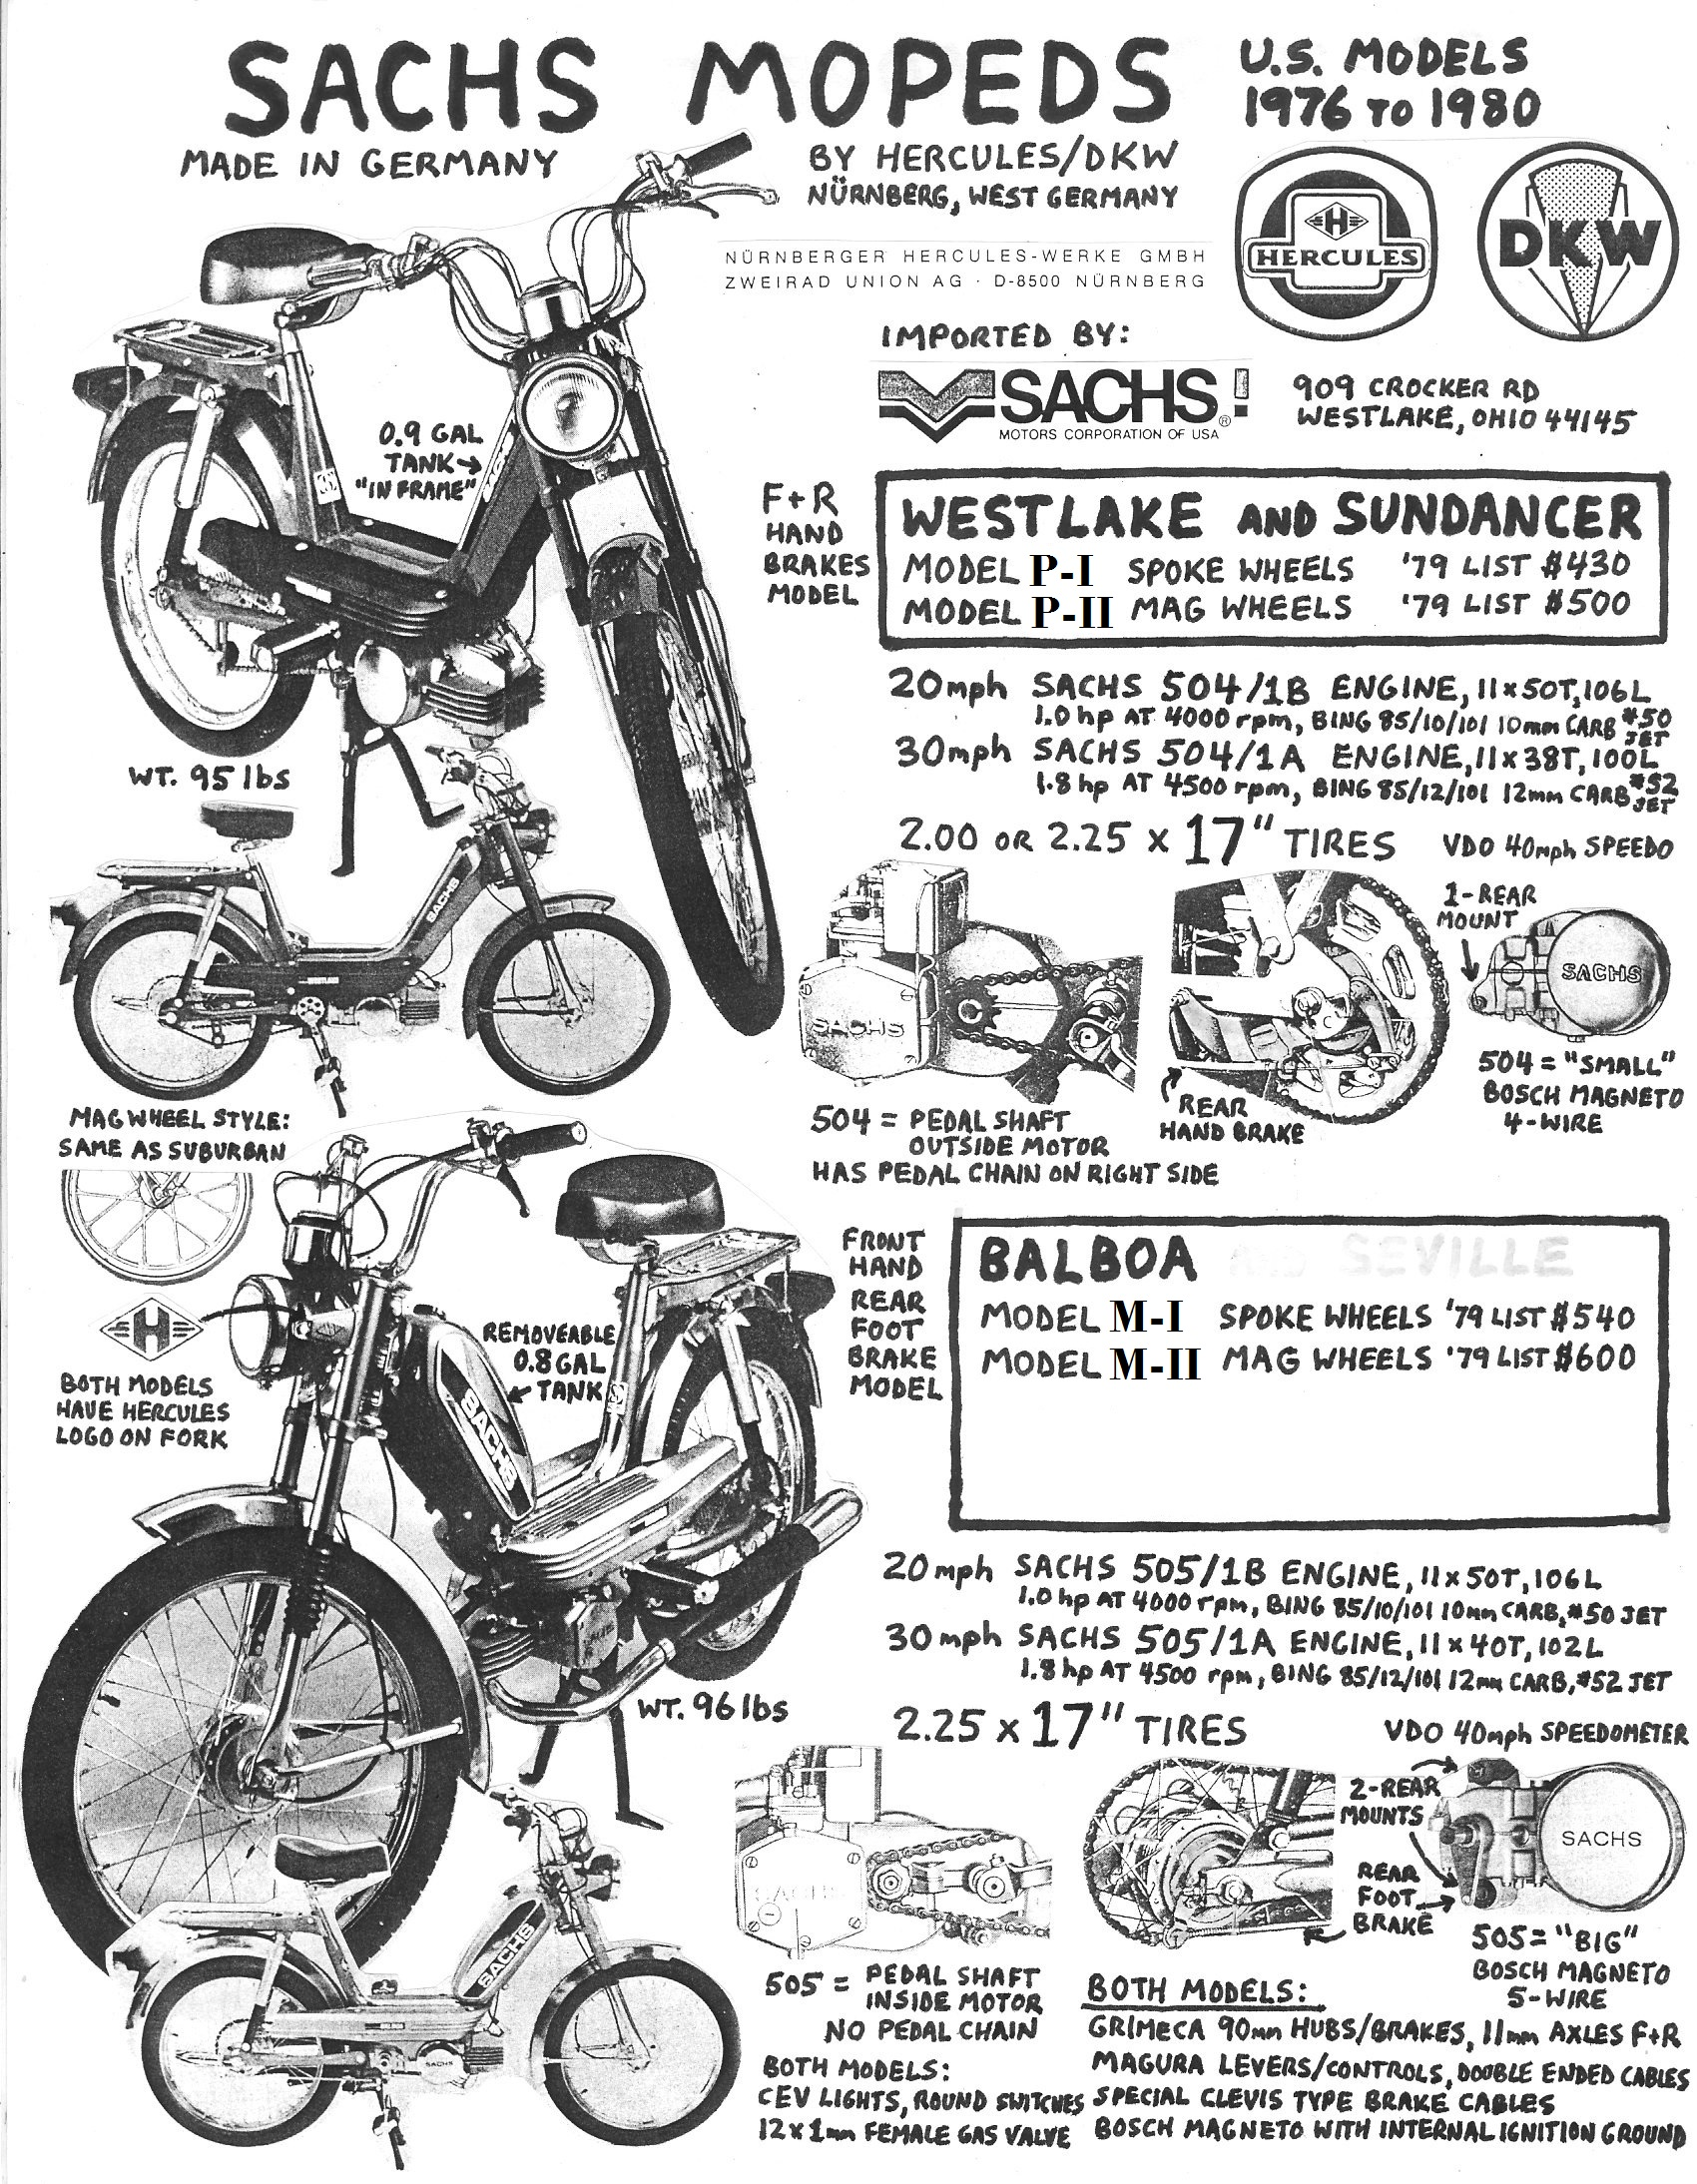 Myron's Sachs Info Sheets, click to enlarge